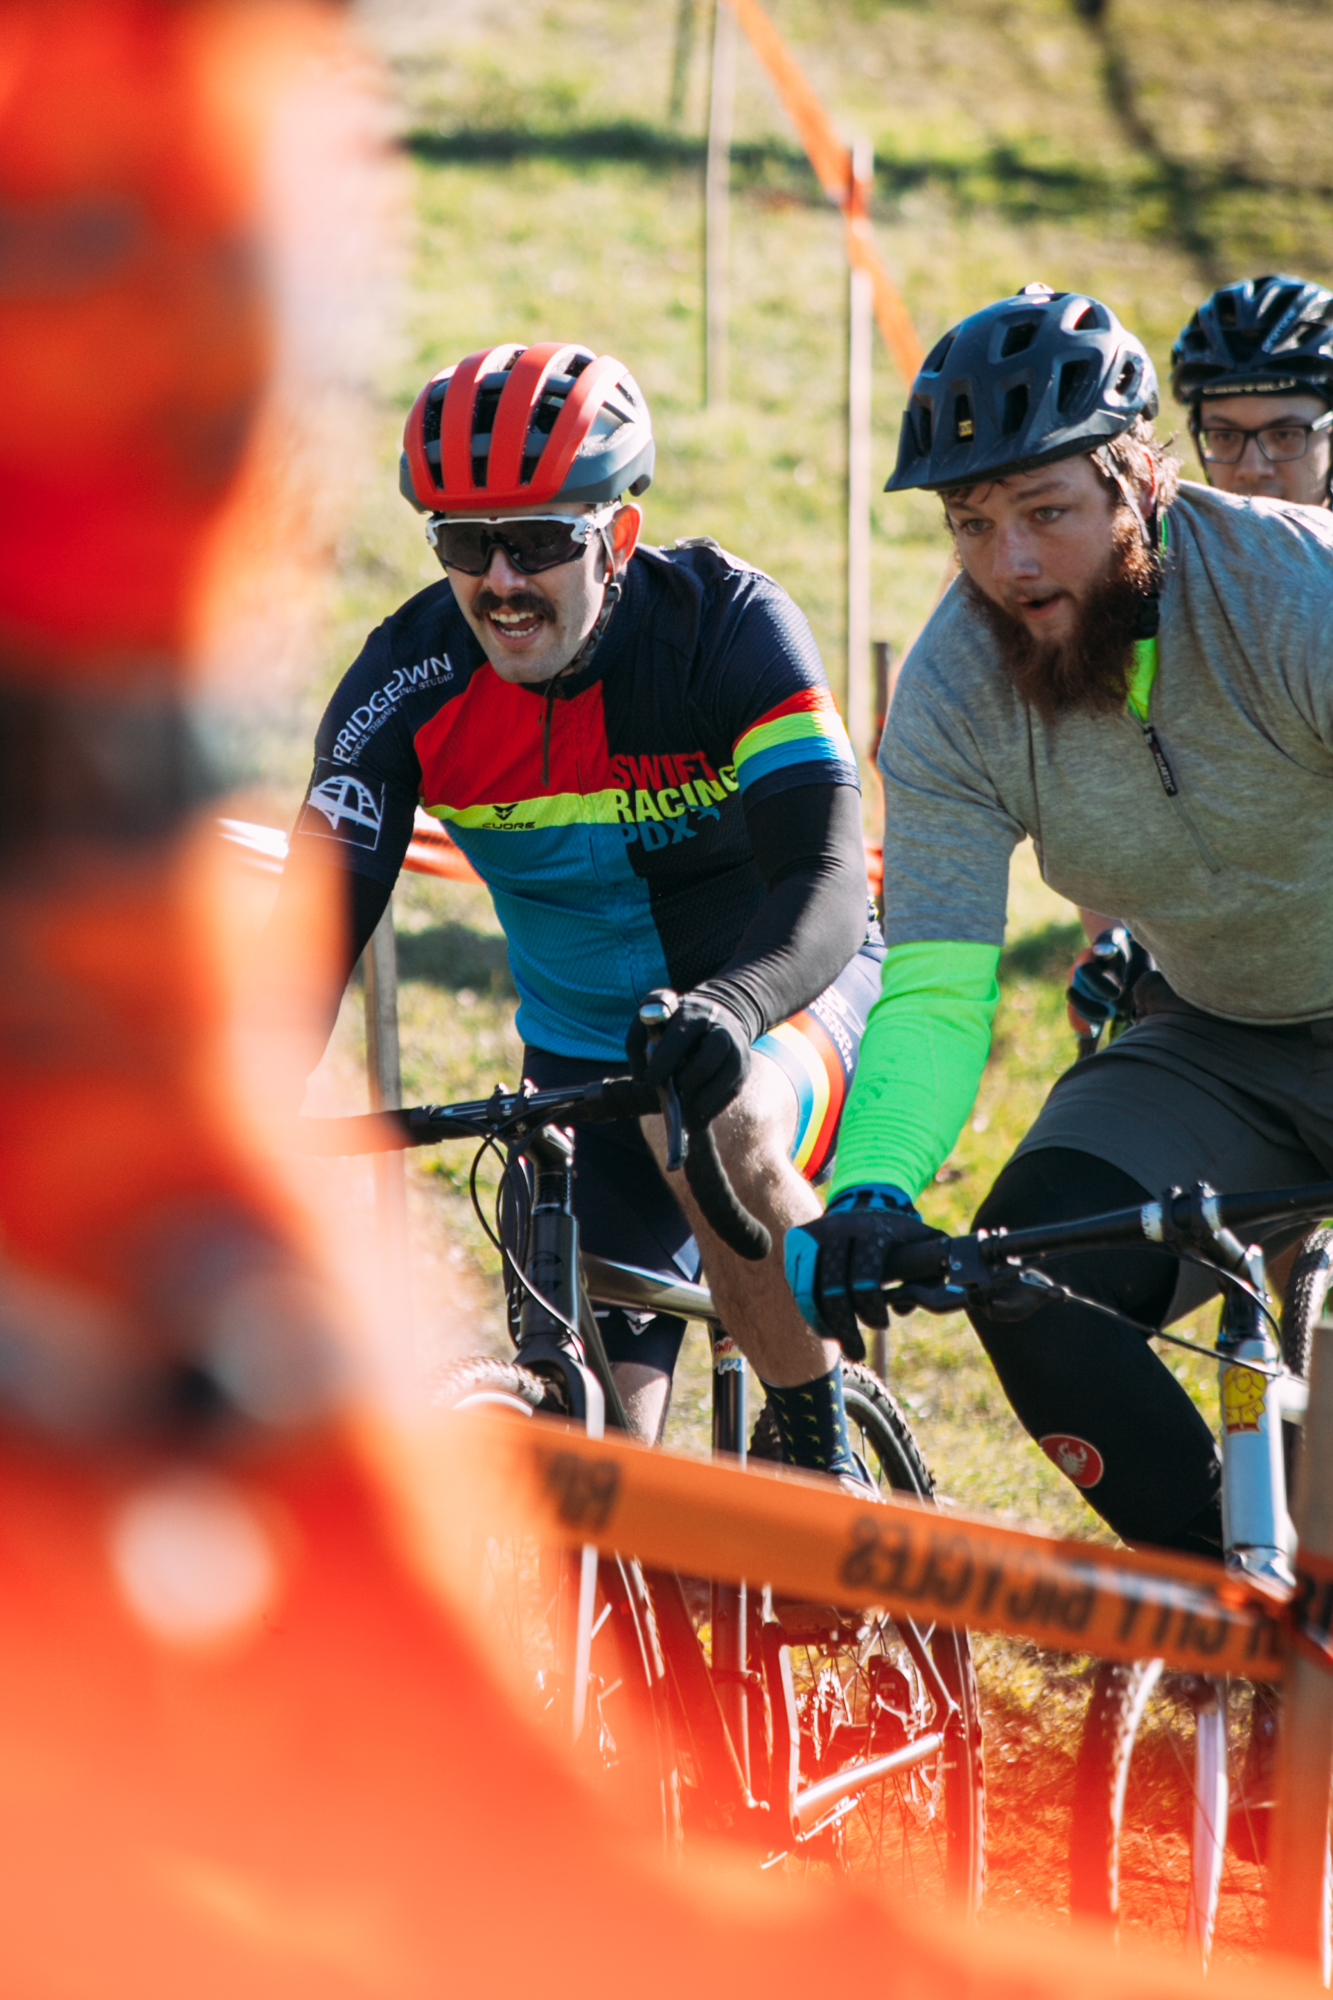 Cyclocross18_CCCX_RainierHS-8-mettlecycling.jpg